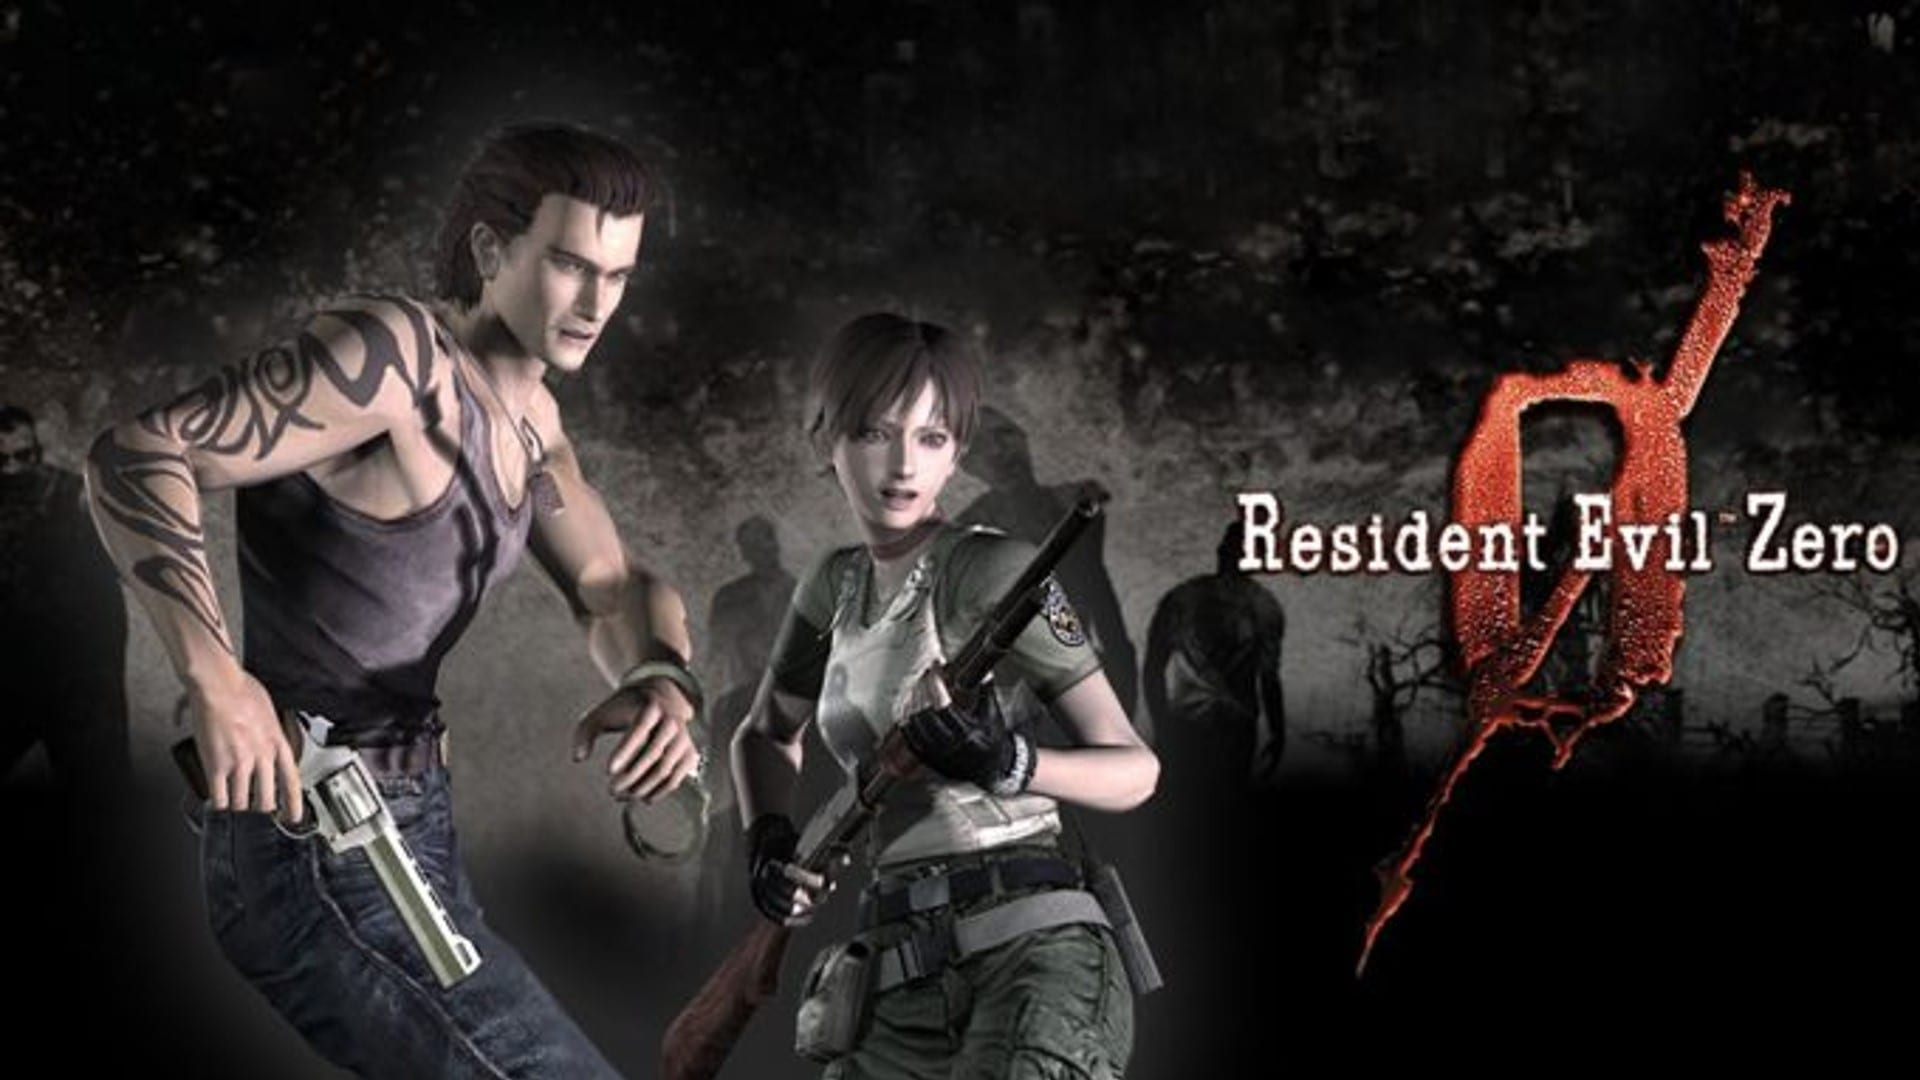 Resident Evil games on Switch announcement - featured image